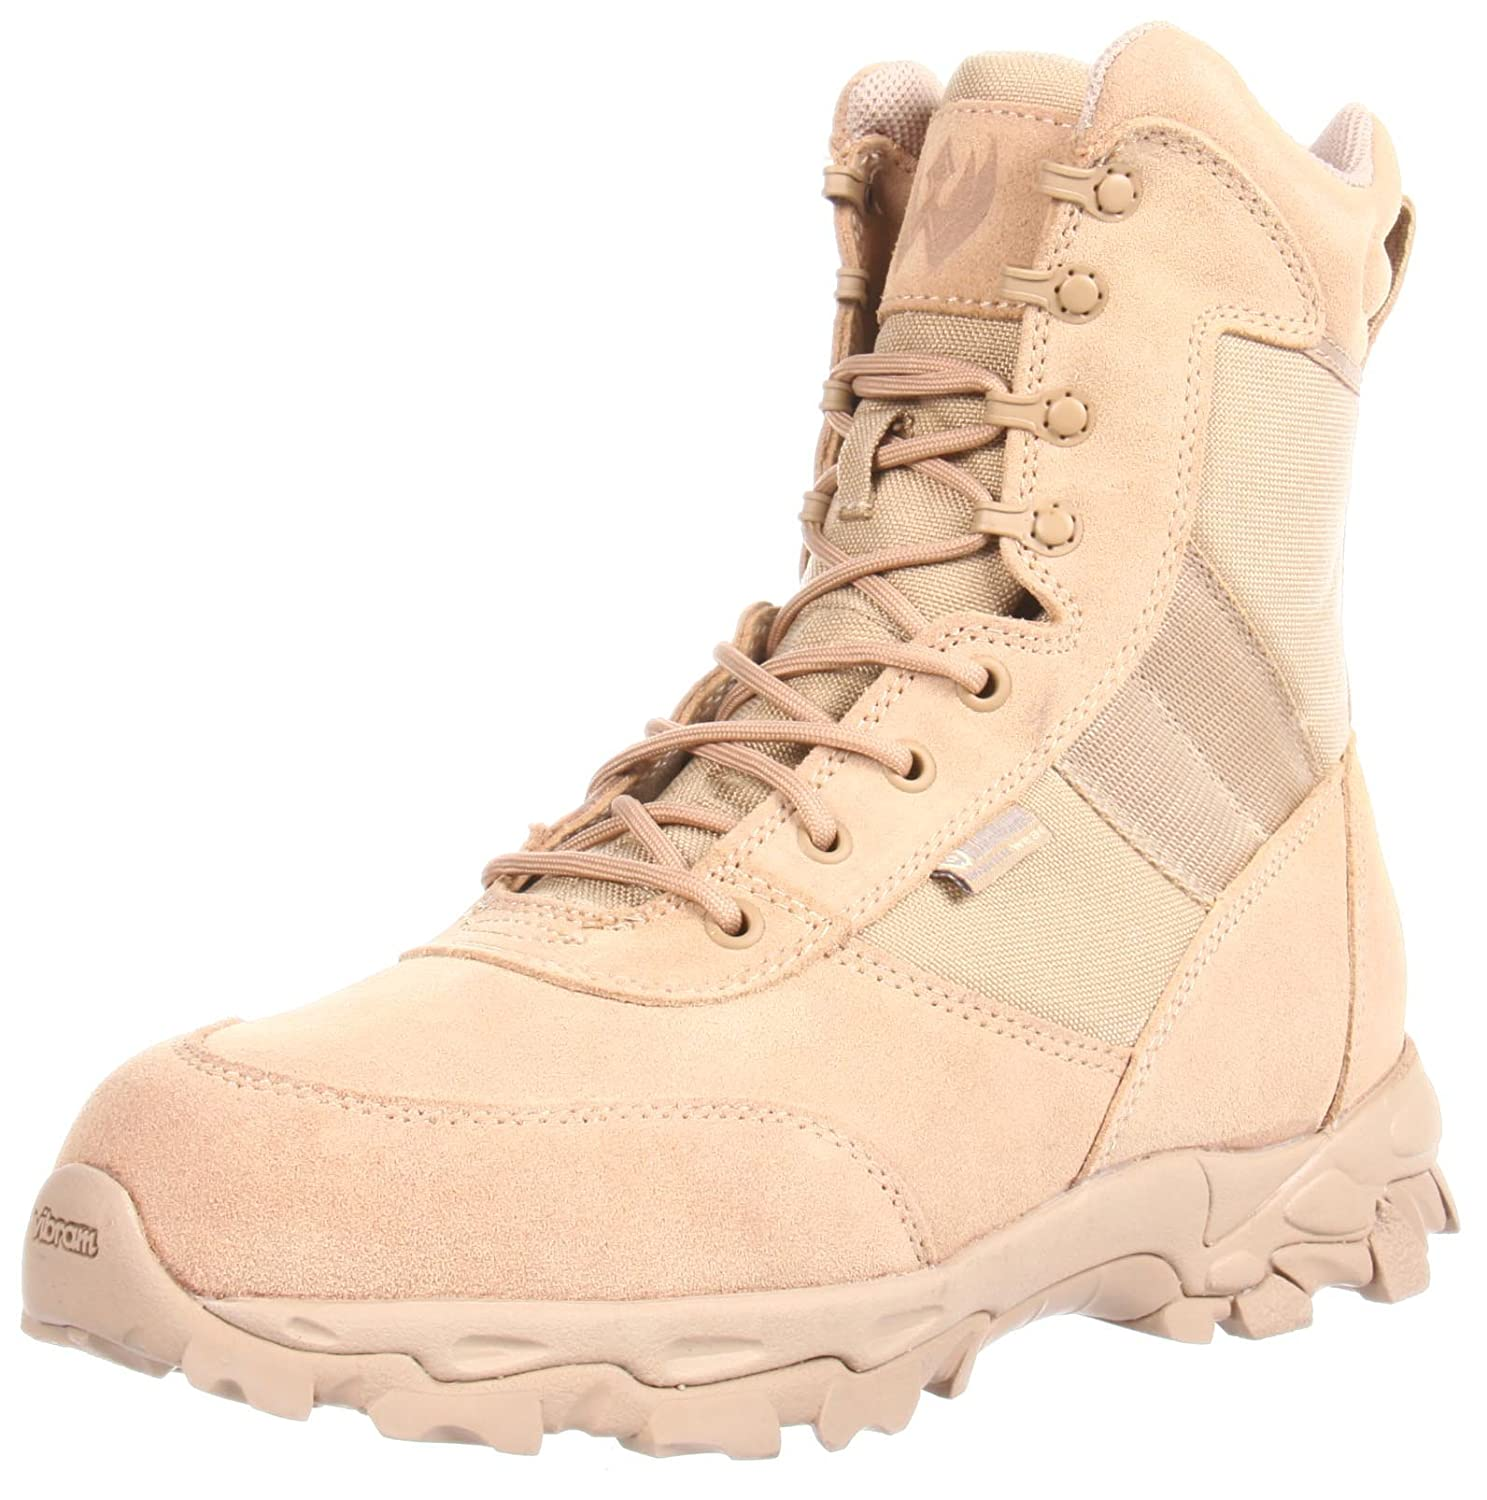 Amazon blackhawk mens warrior wear desert ops boots shoes publicscrutiny Choice Image